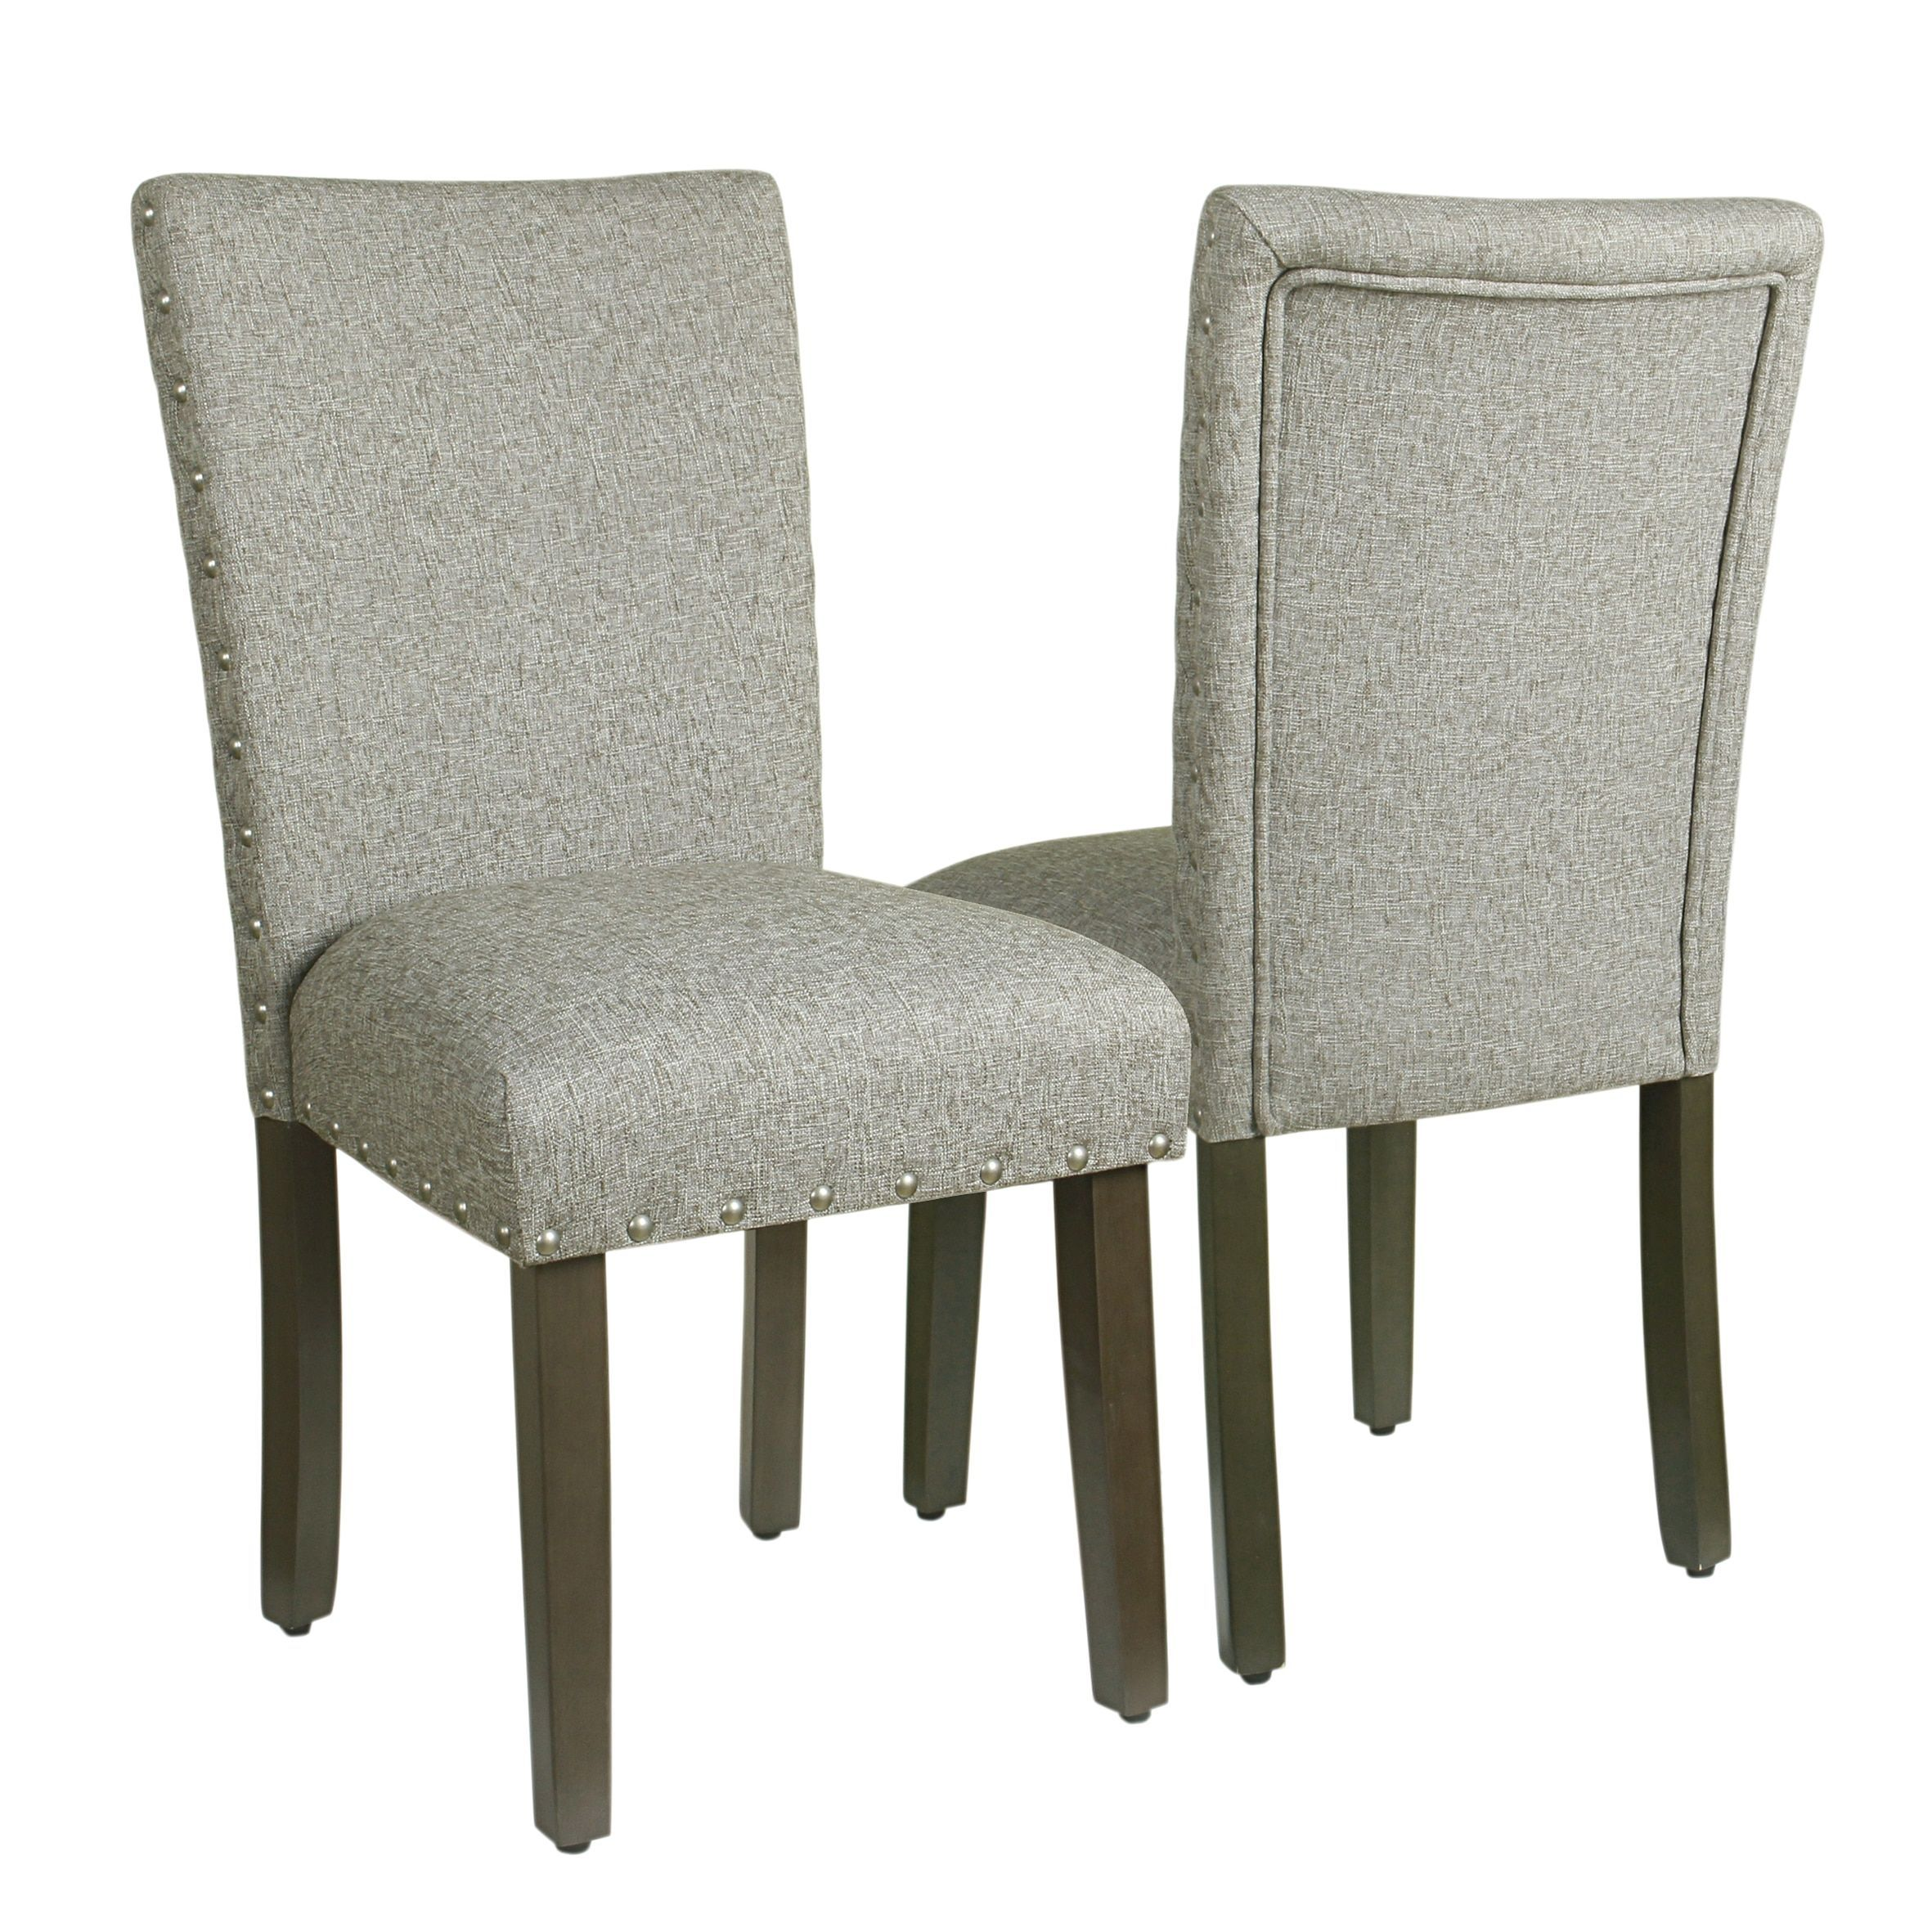 HomePop Classic Parsons Chair With Nailhead Trim   Sterling Grey (Set Of 2)  (Sterling Grey) (Fabric)